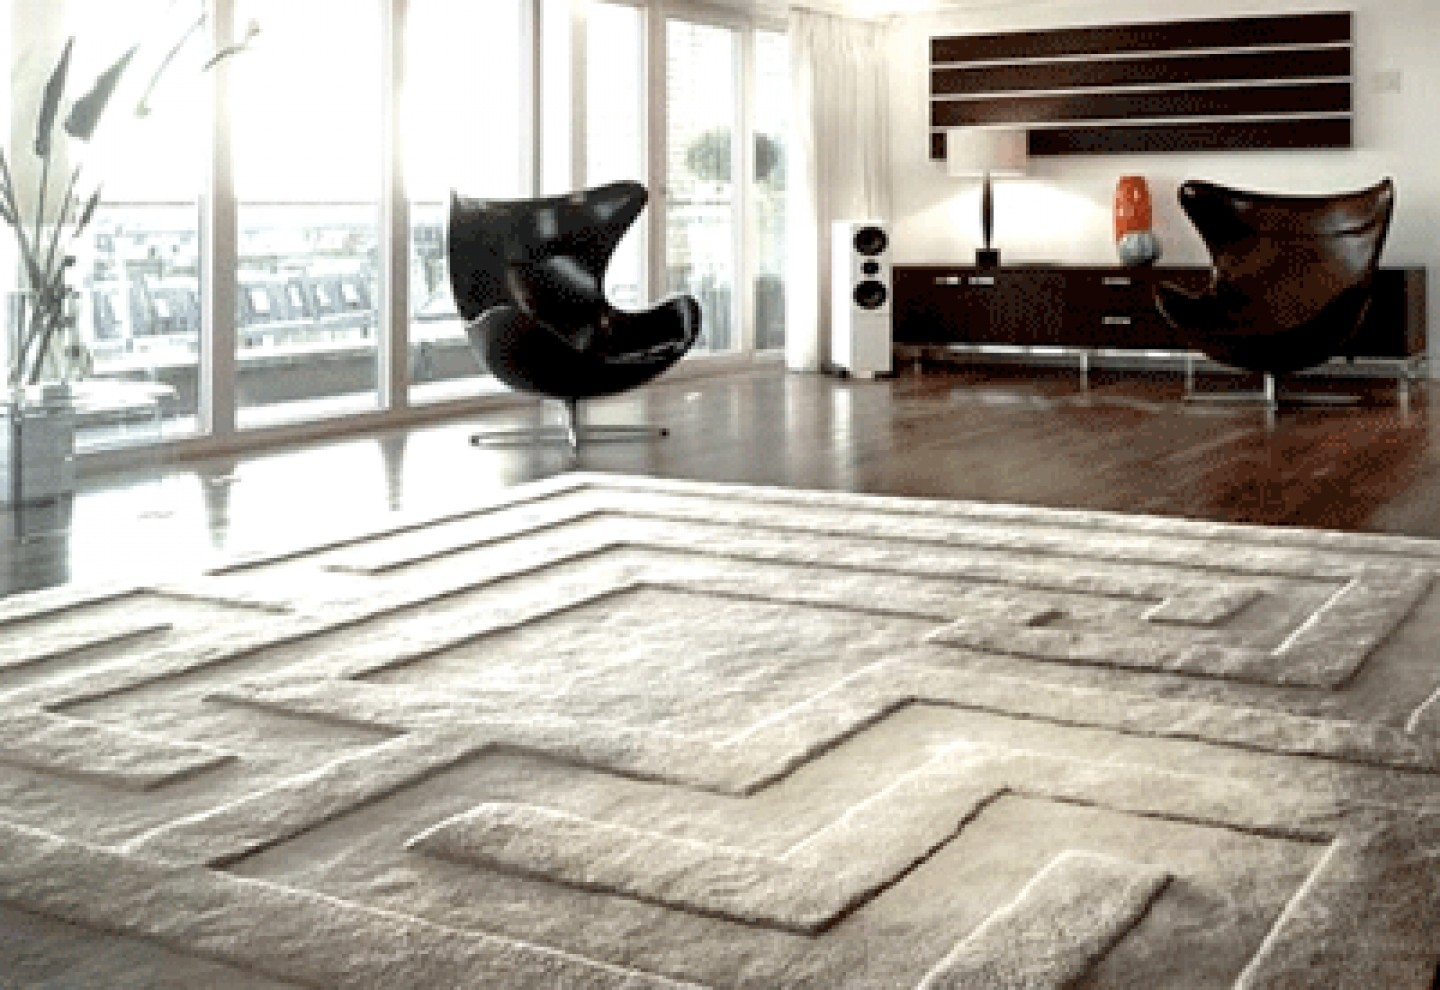 Cover your place with stunning large area rugs